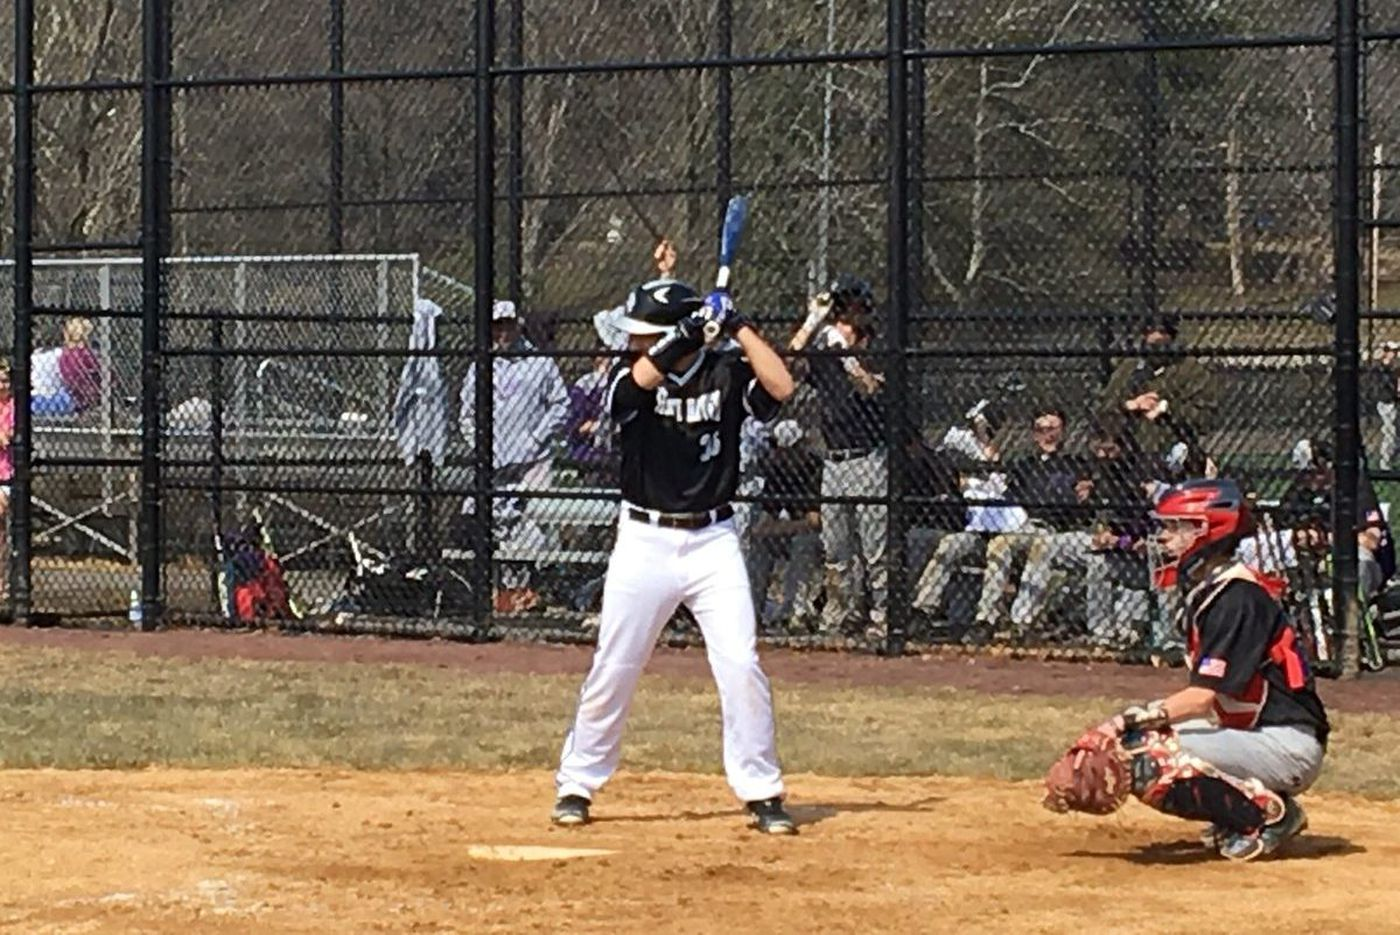 Thursday's Pa. roundup: Anthony Viggiano lifts Strath Haven over Phoenixville